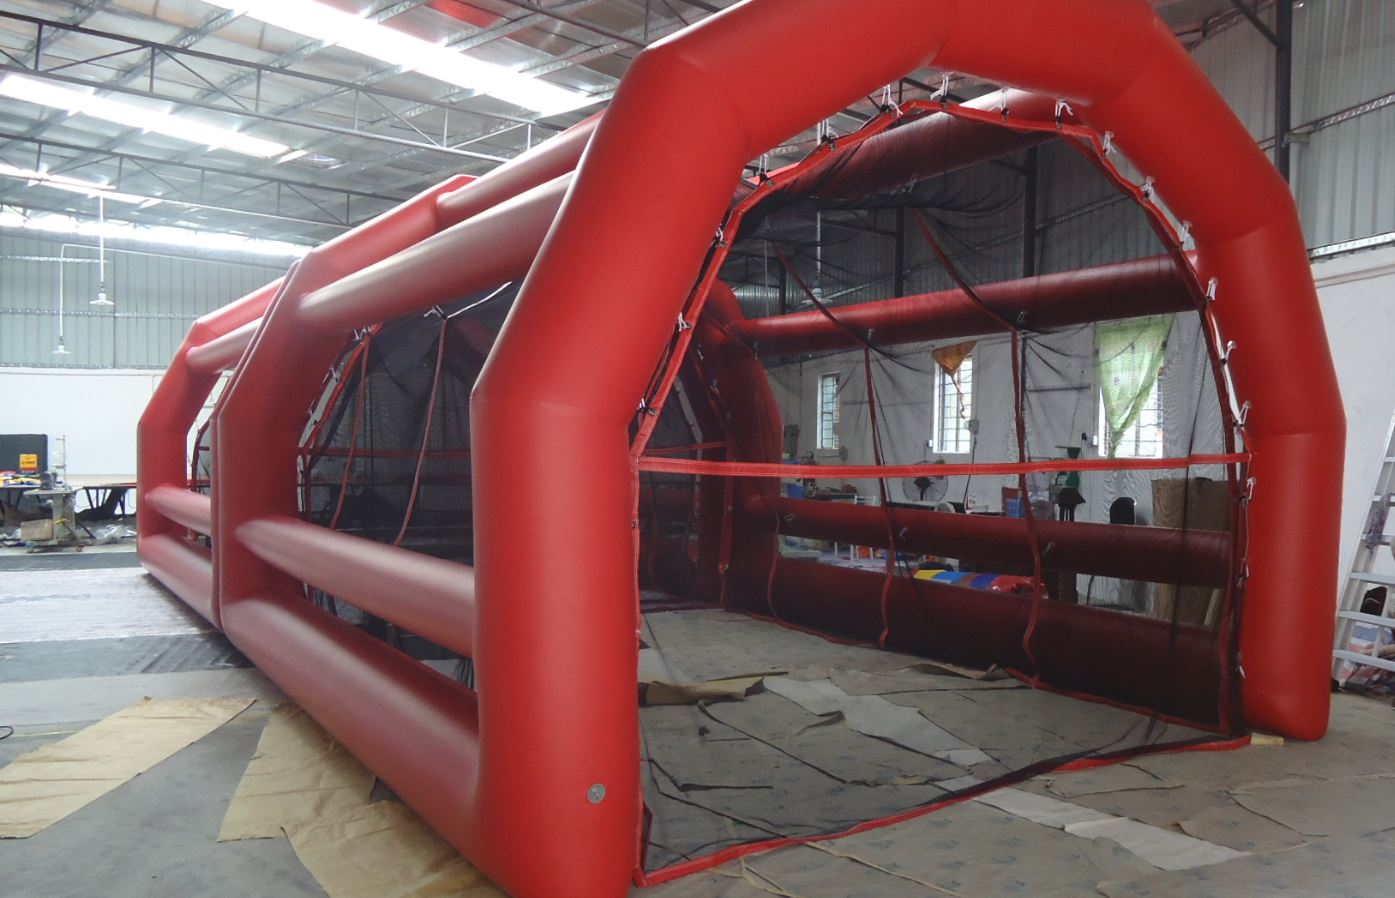 Batting Cage is fully enclosed and includes a pitching machine. 50' l x 16' w x 12' h.